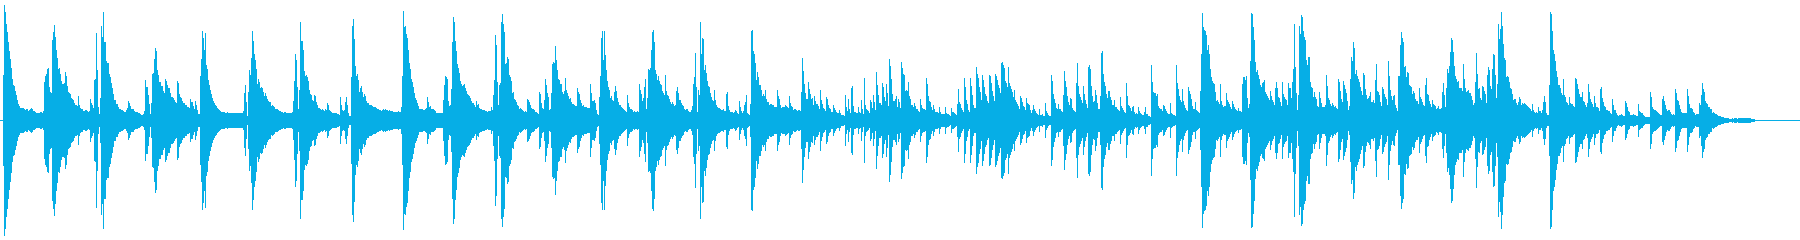 Moist and heartwarming BGM1's reproduced waveform